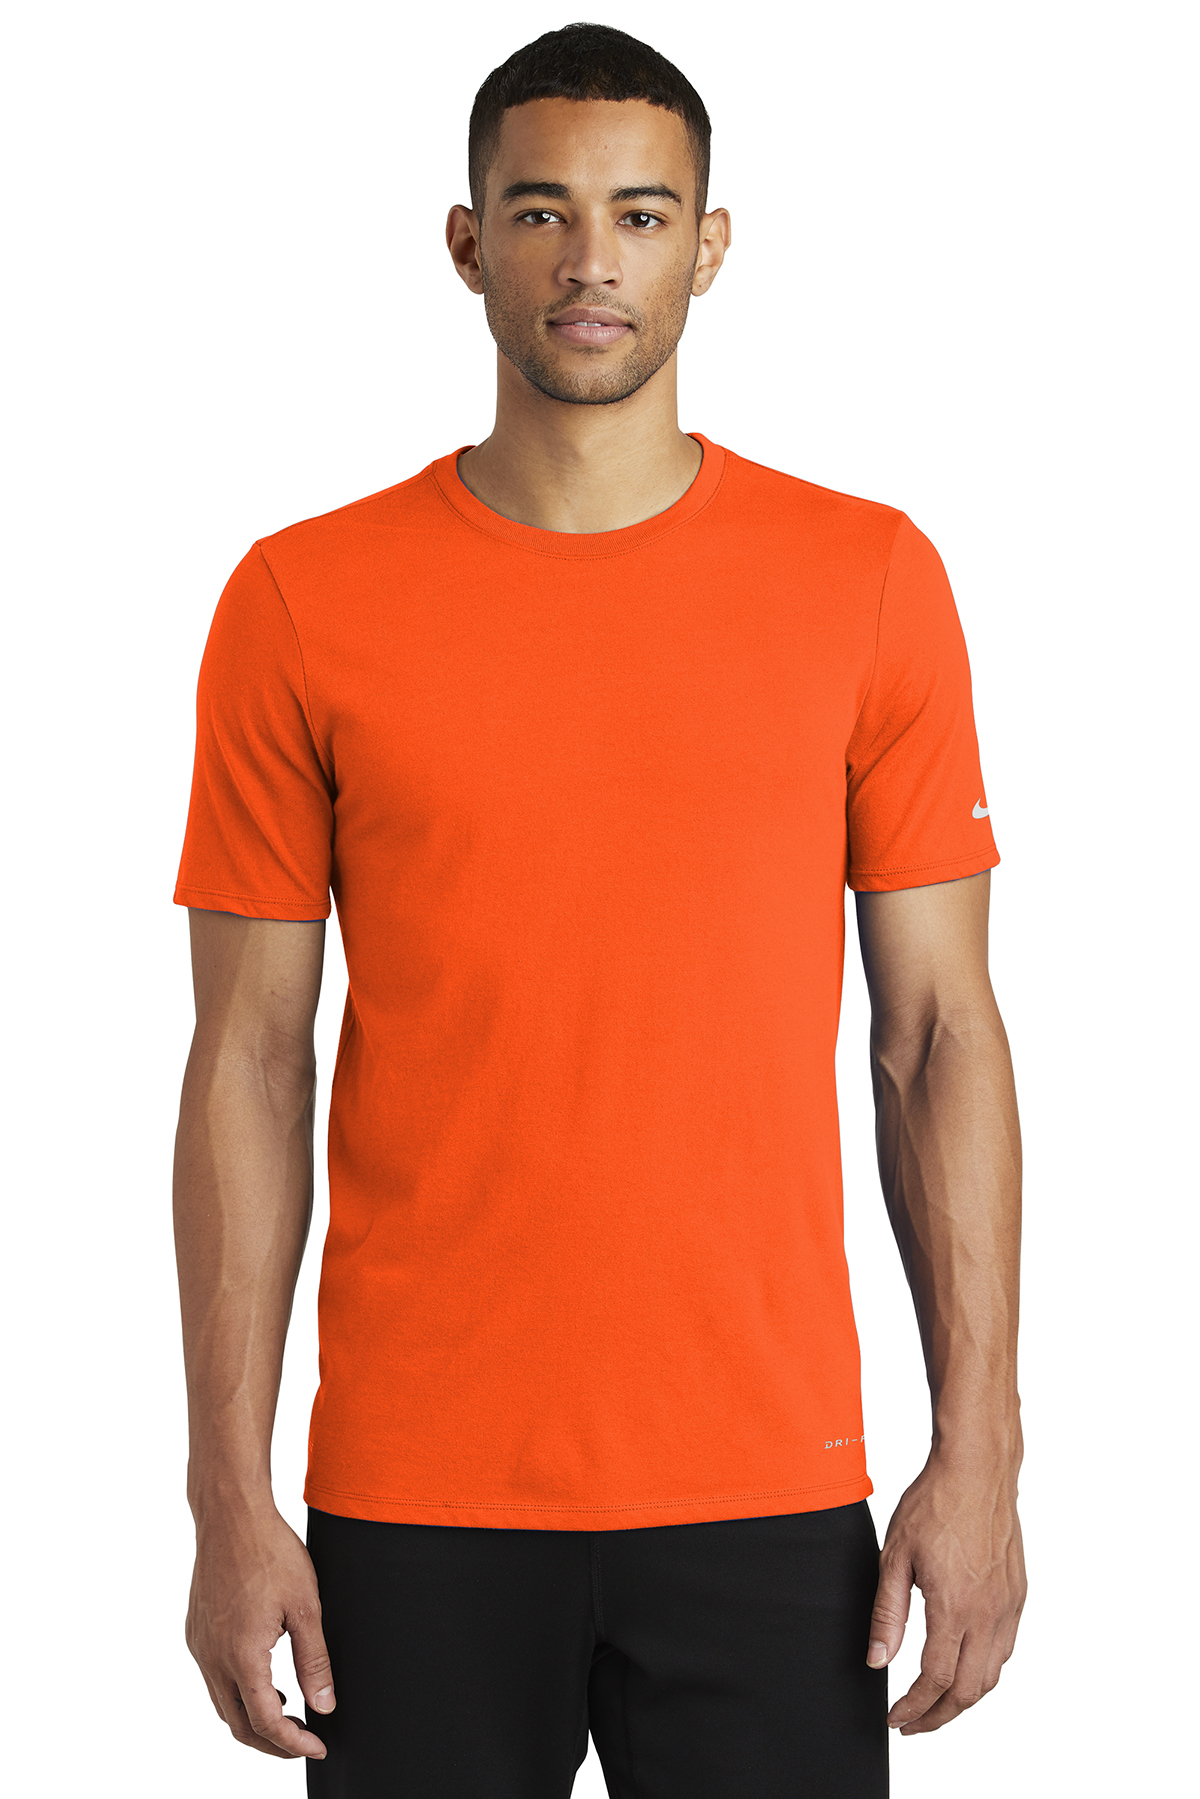 df5a4eefa83 Nike Dri-FIT Cotton Poly Tee